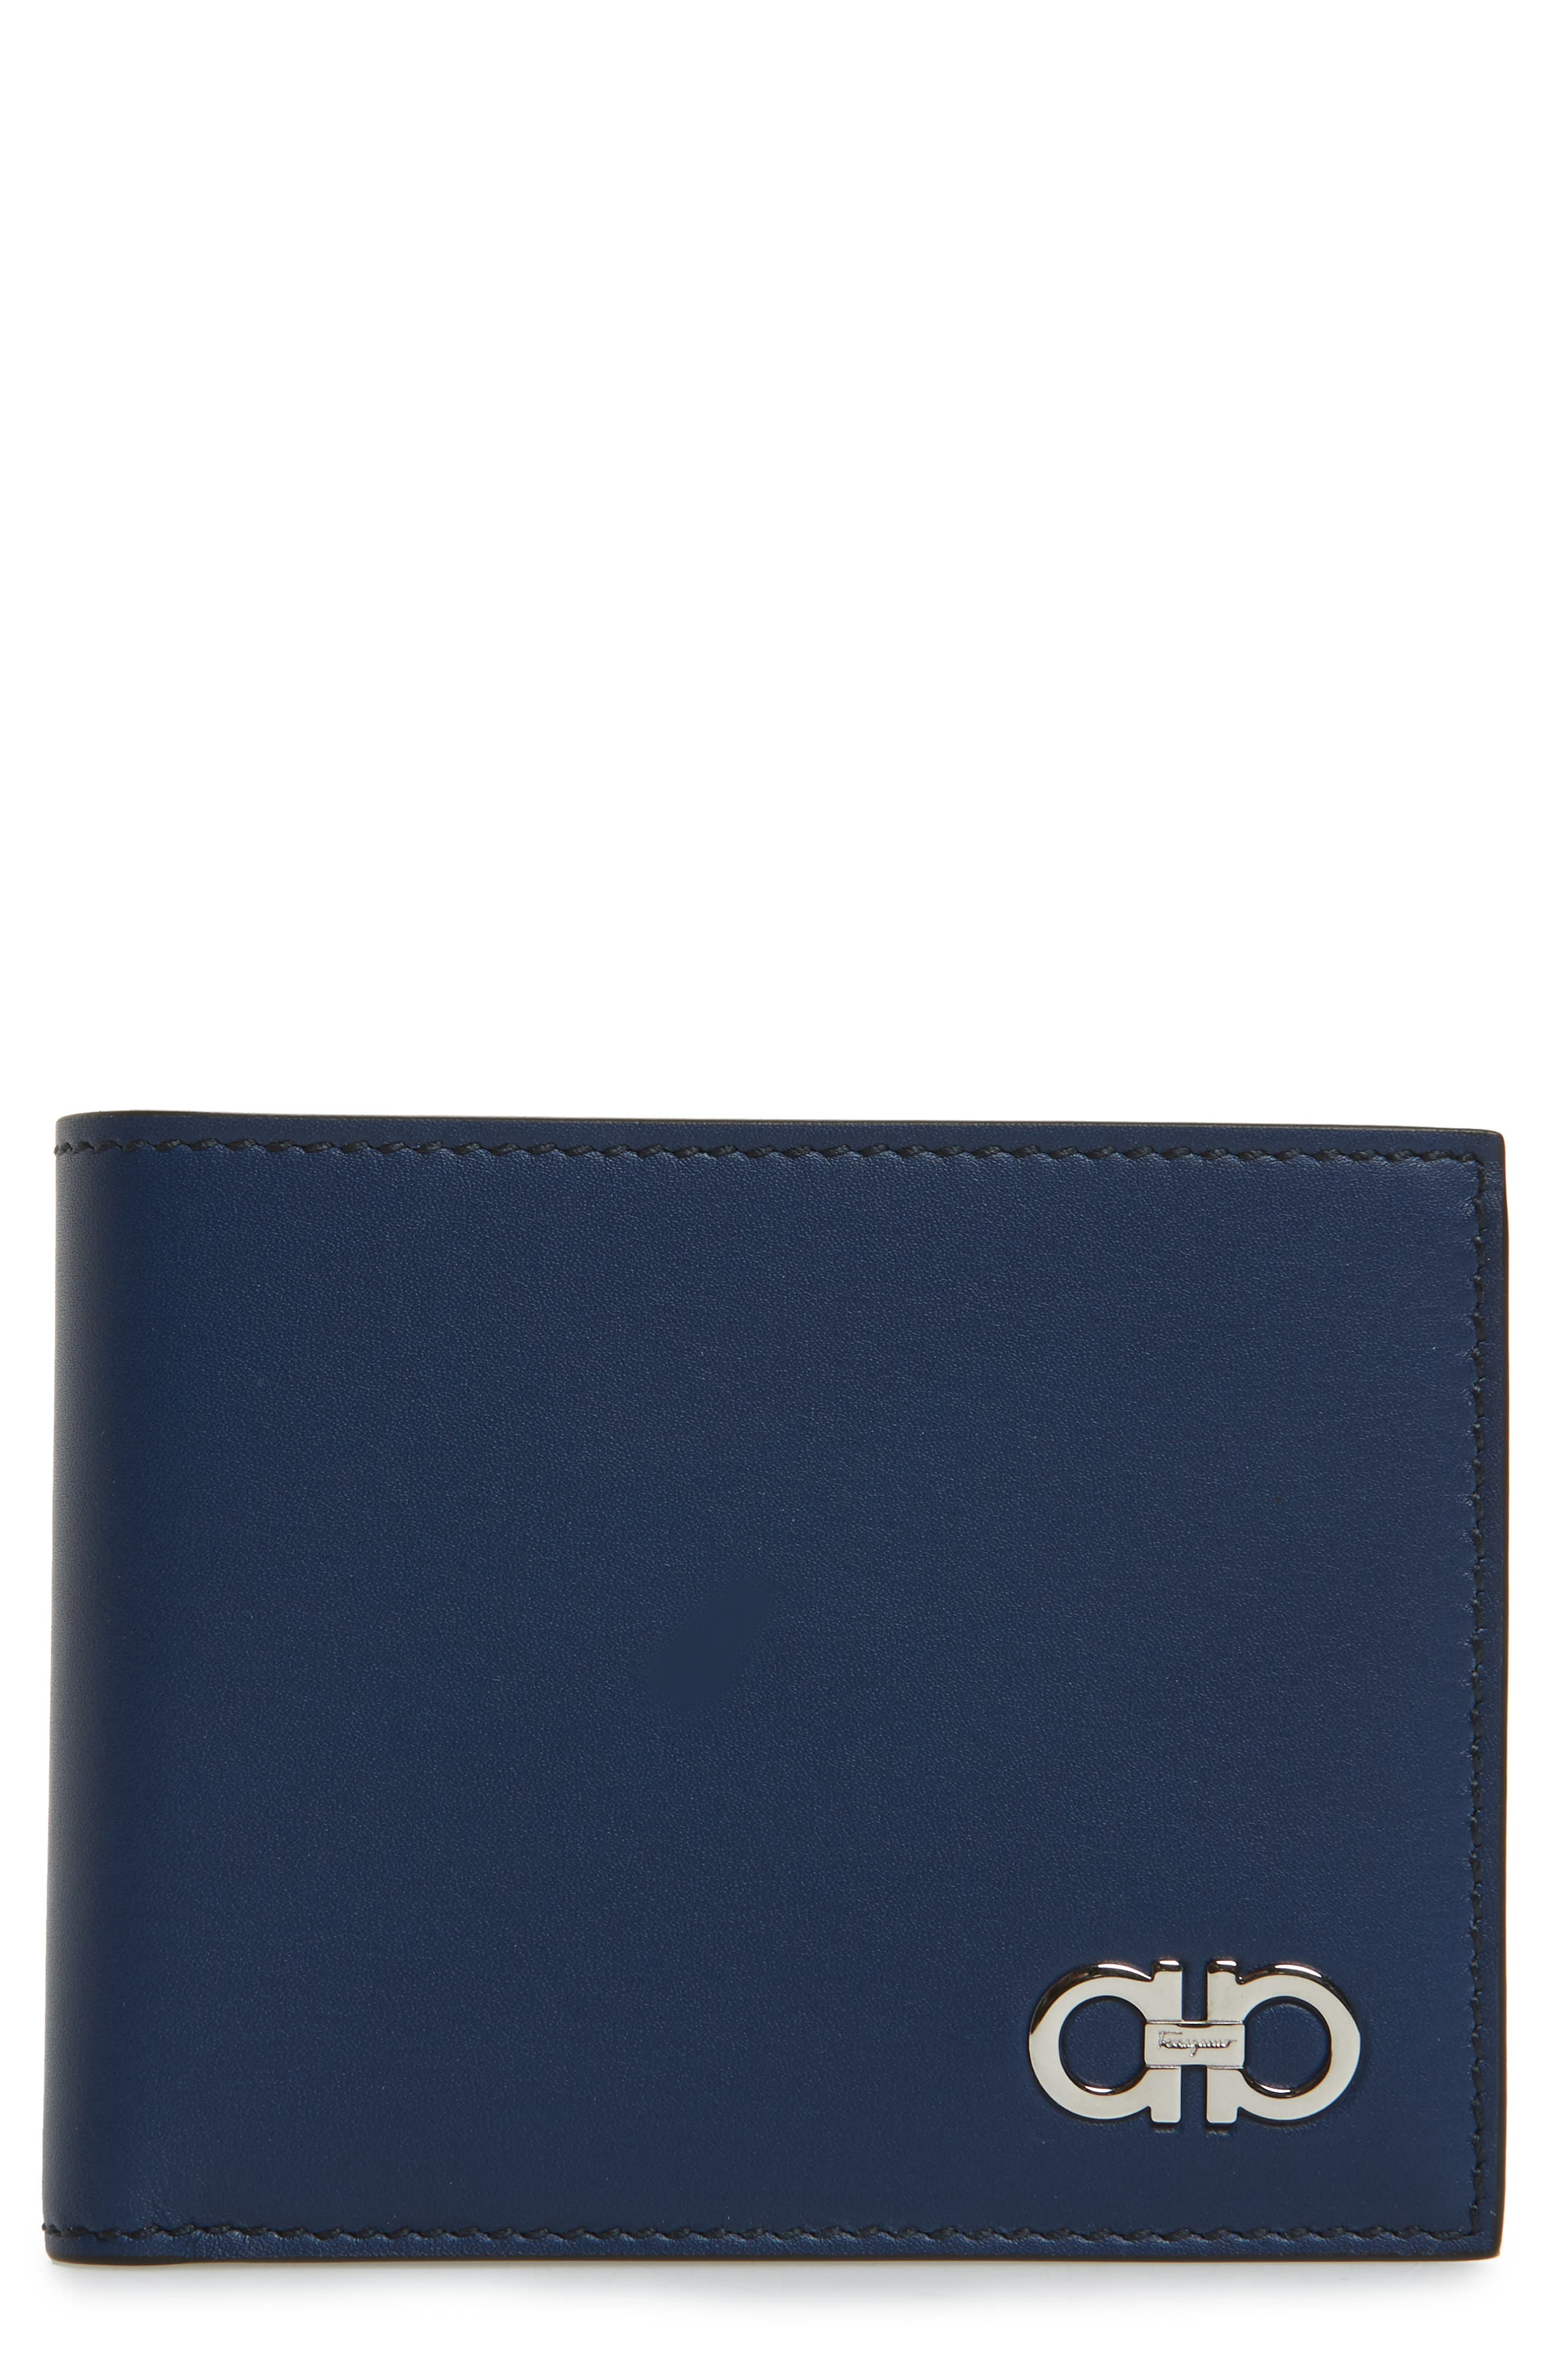 Leather Bifold Wallet,                         Main,                         color, Ultramarine